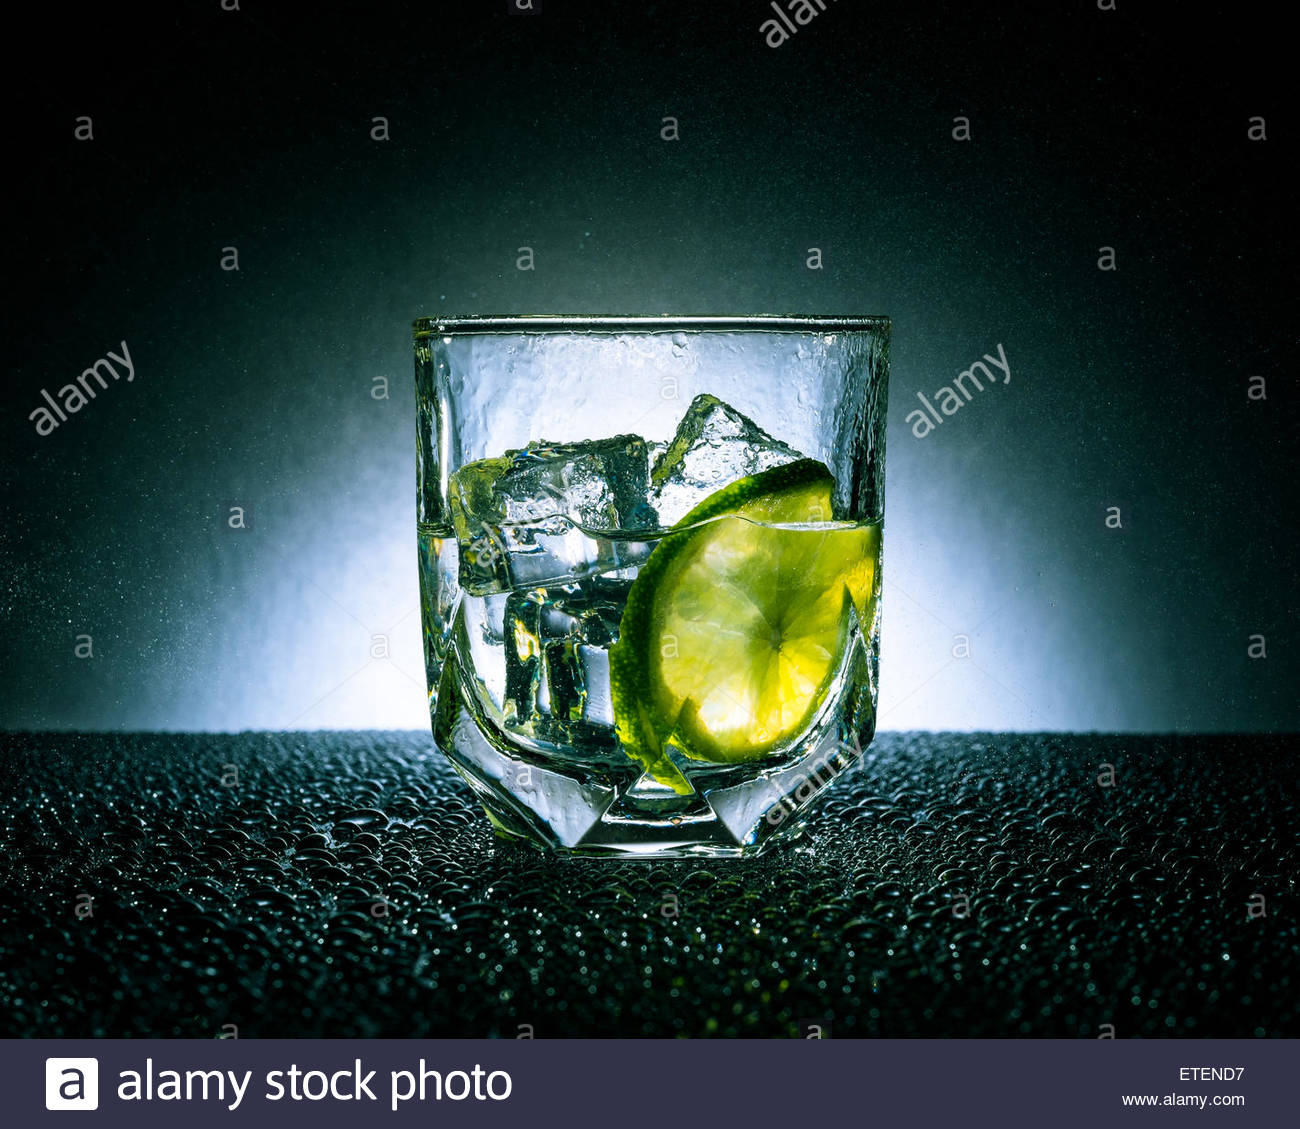 Ice cold gin & tonic with a slice of lime - Stock Image